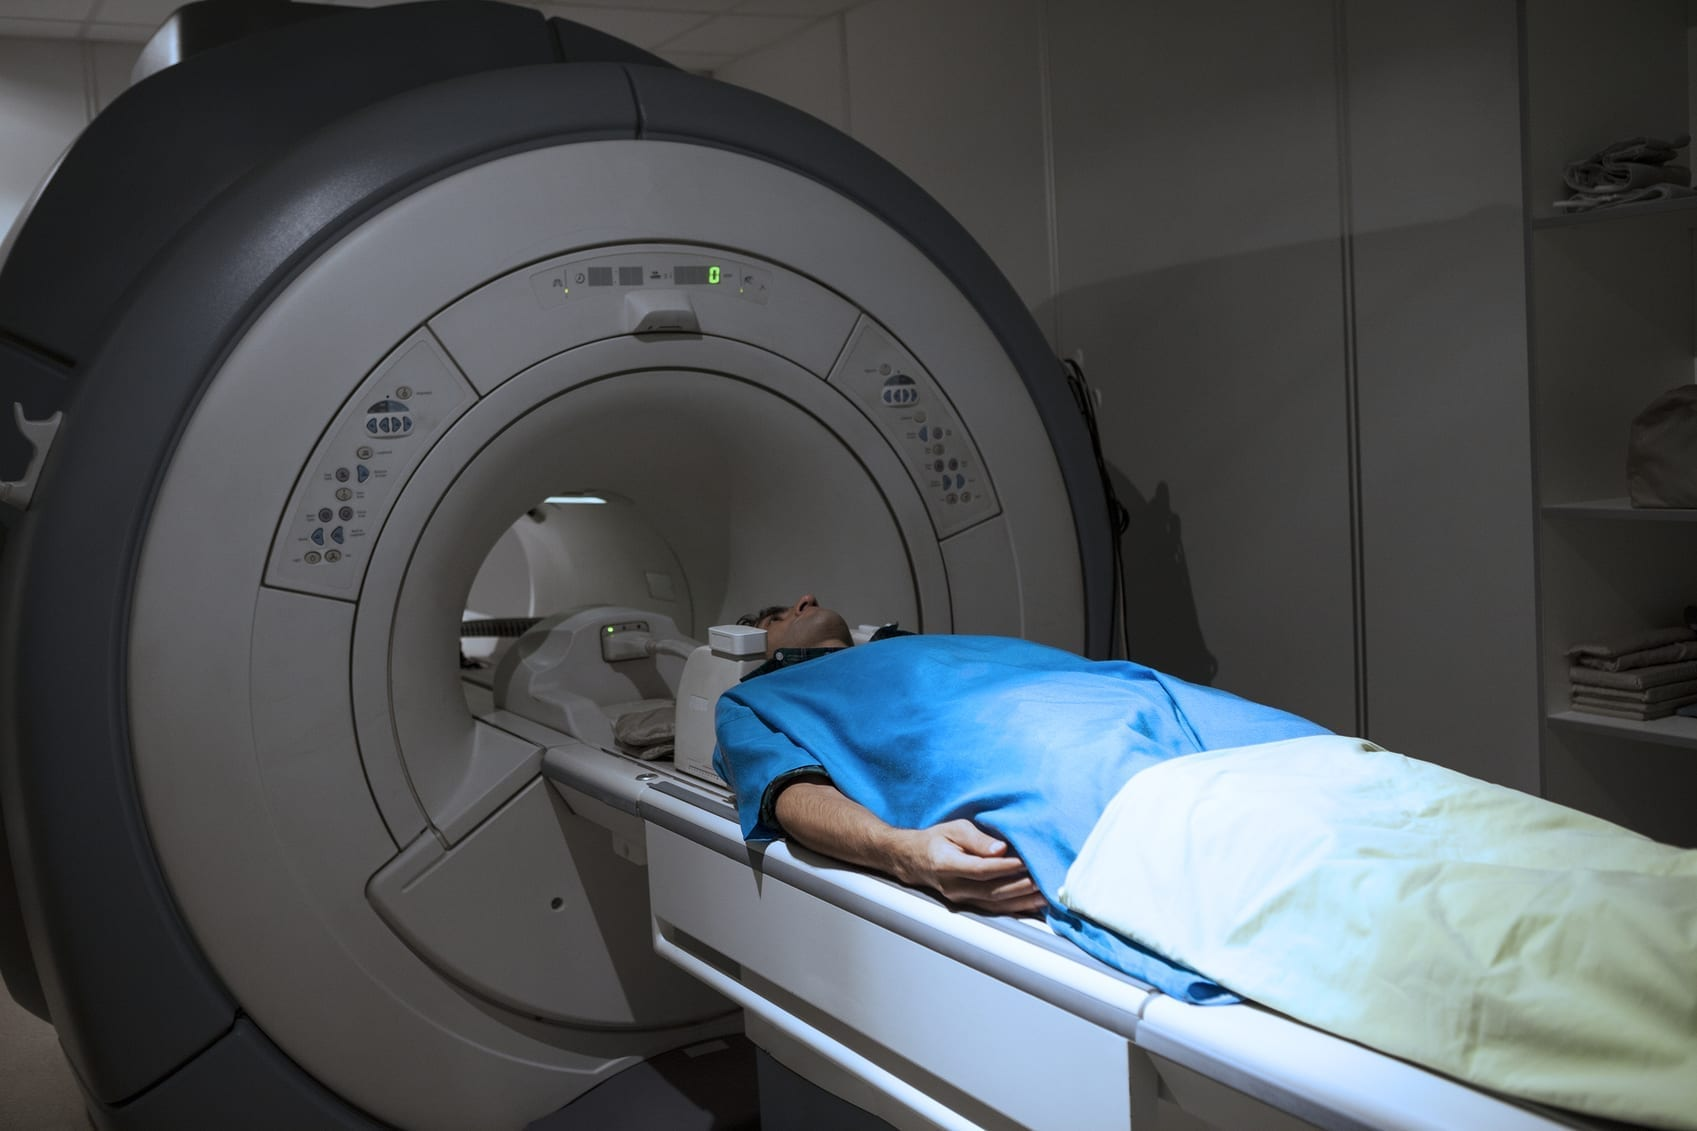 Workers' Compensation - MRI Stock Photo